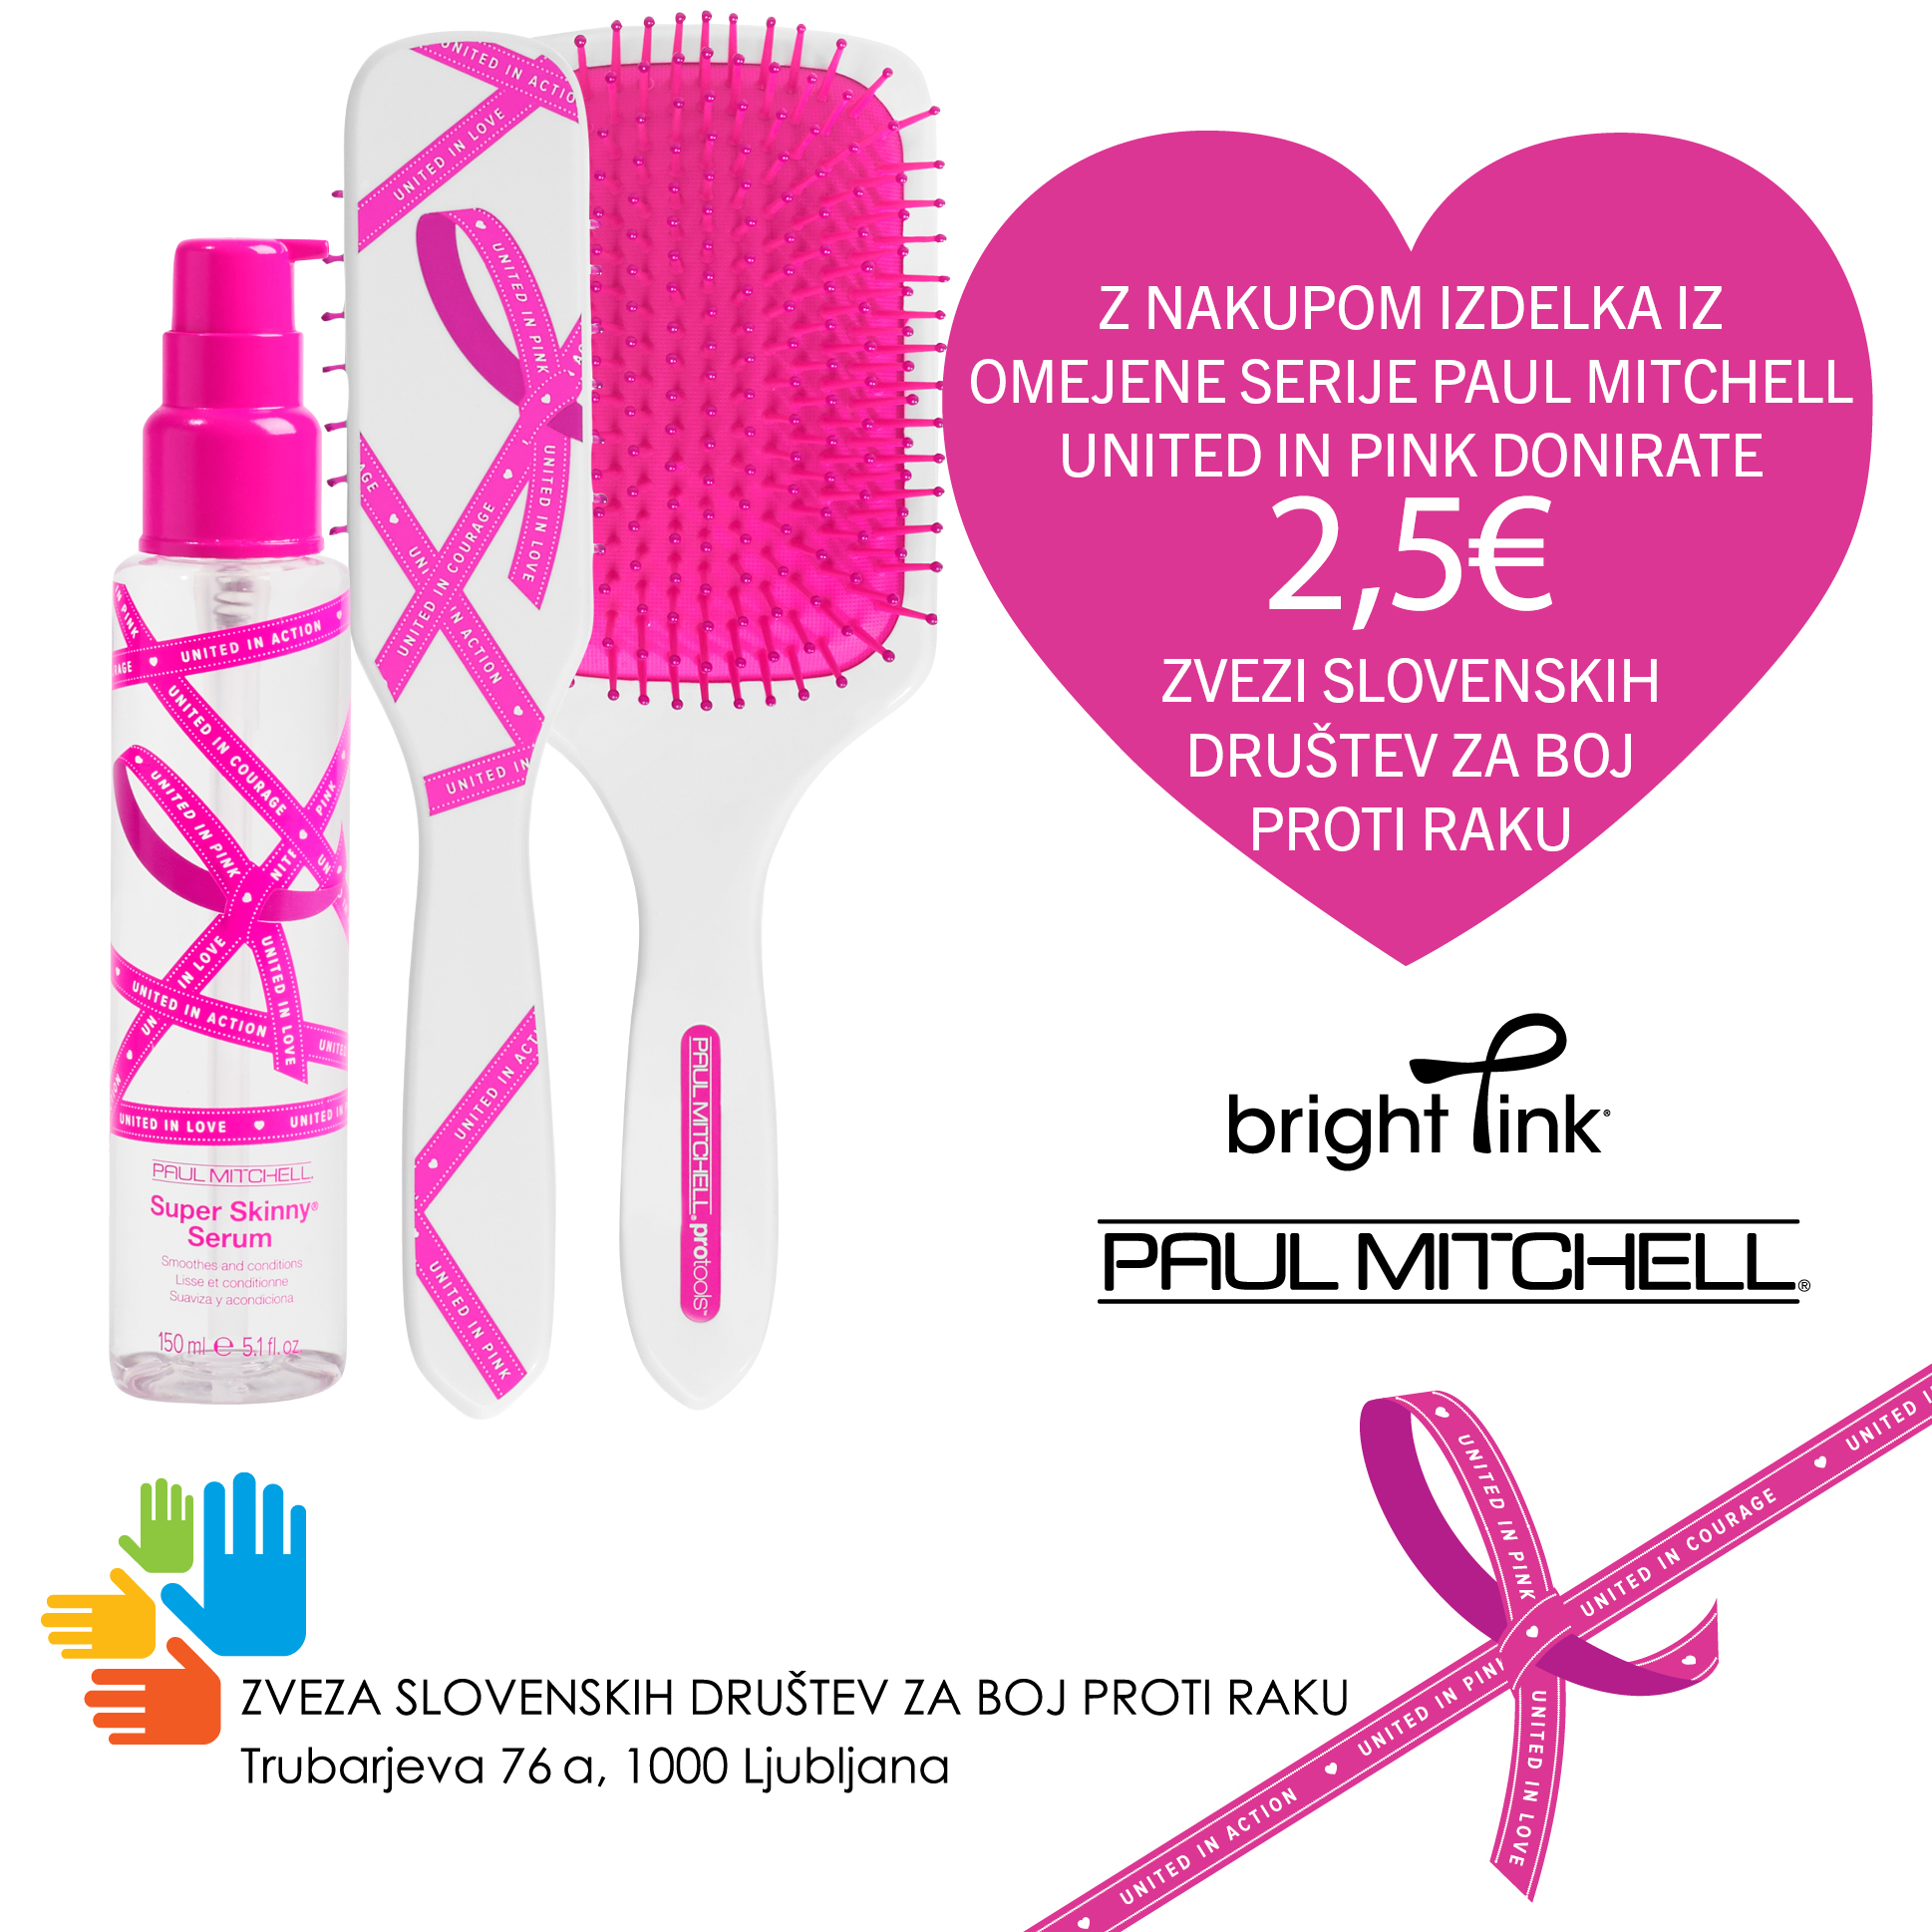 Paul Mitchell United In Pink izdelki